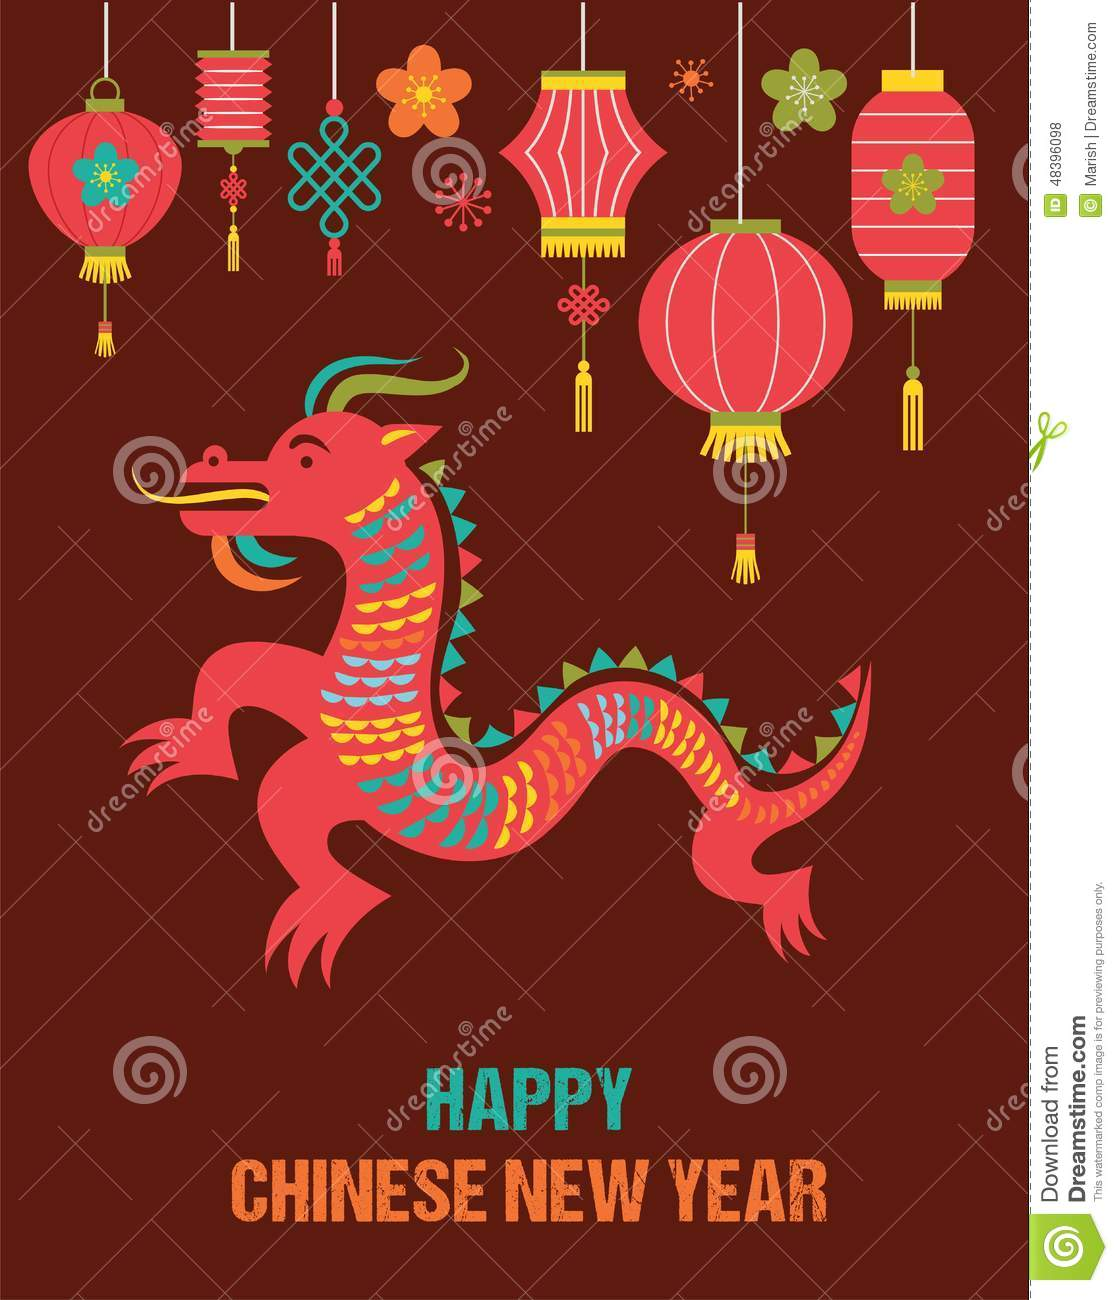 Chinese new year background with red dragon stock vector image